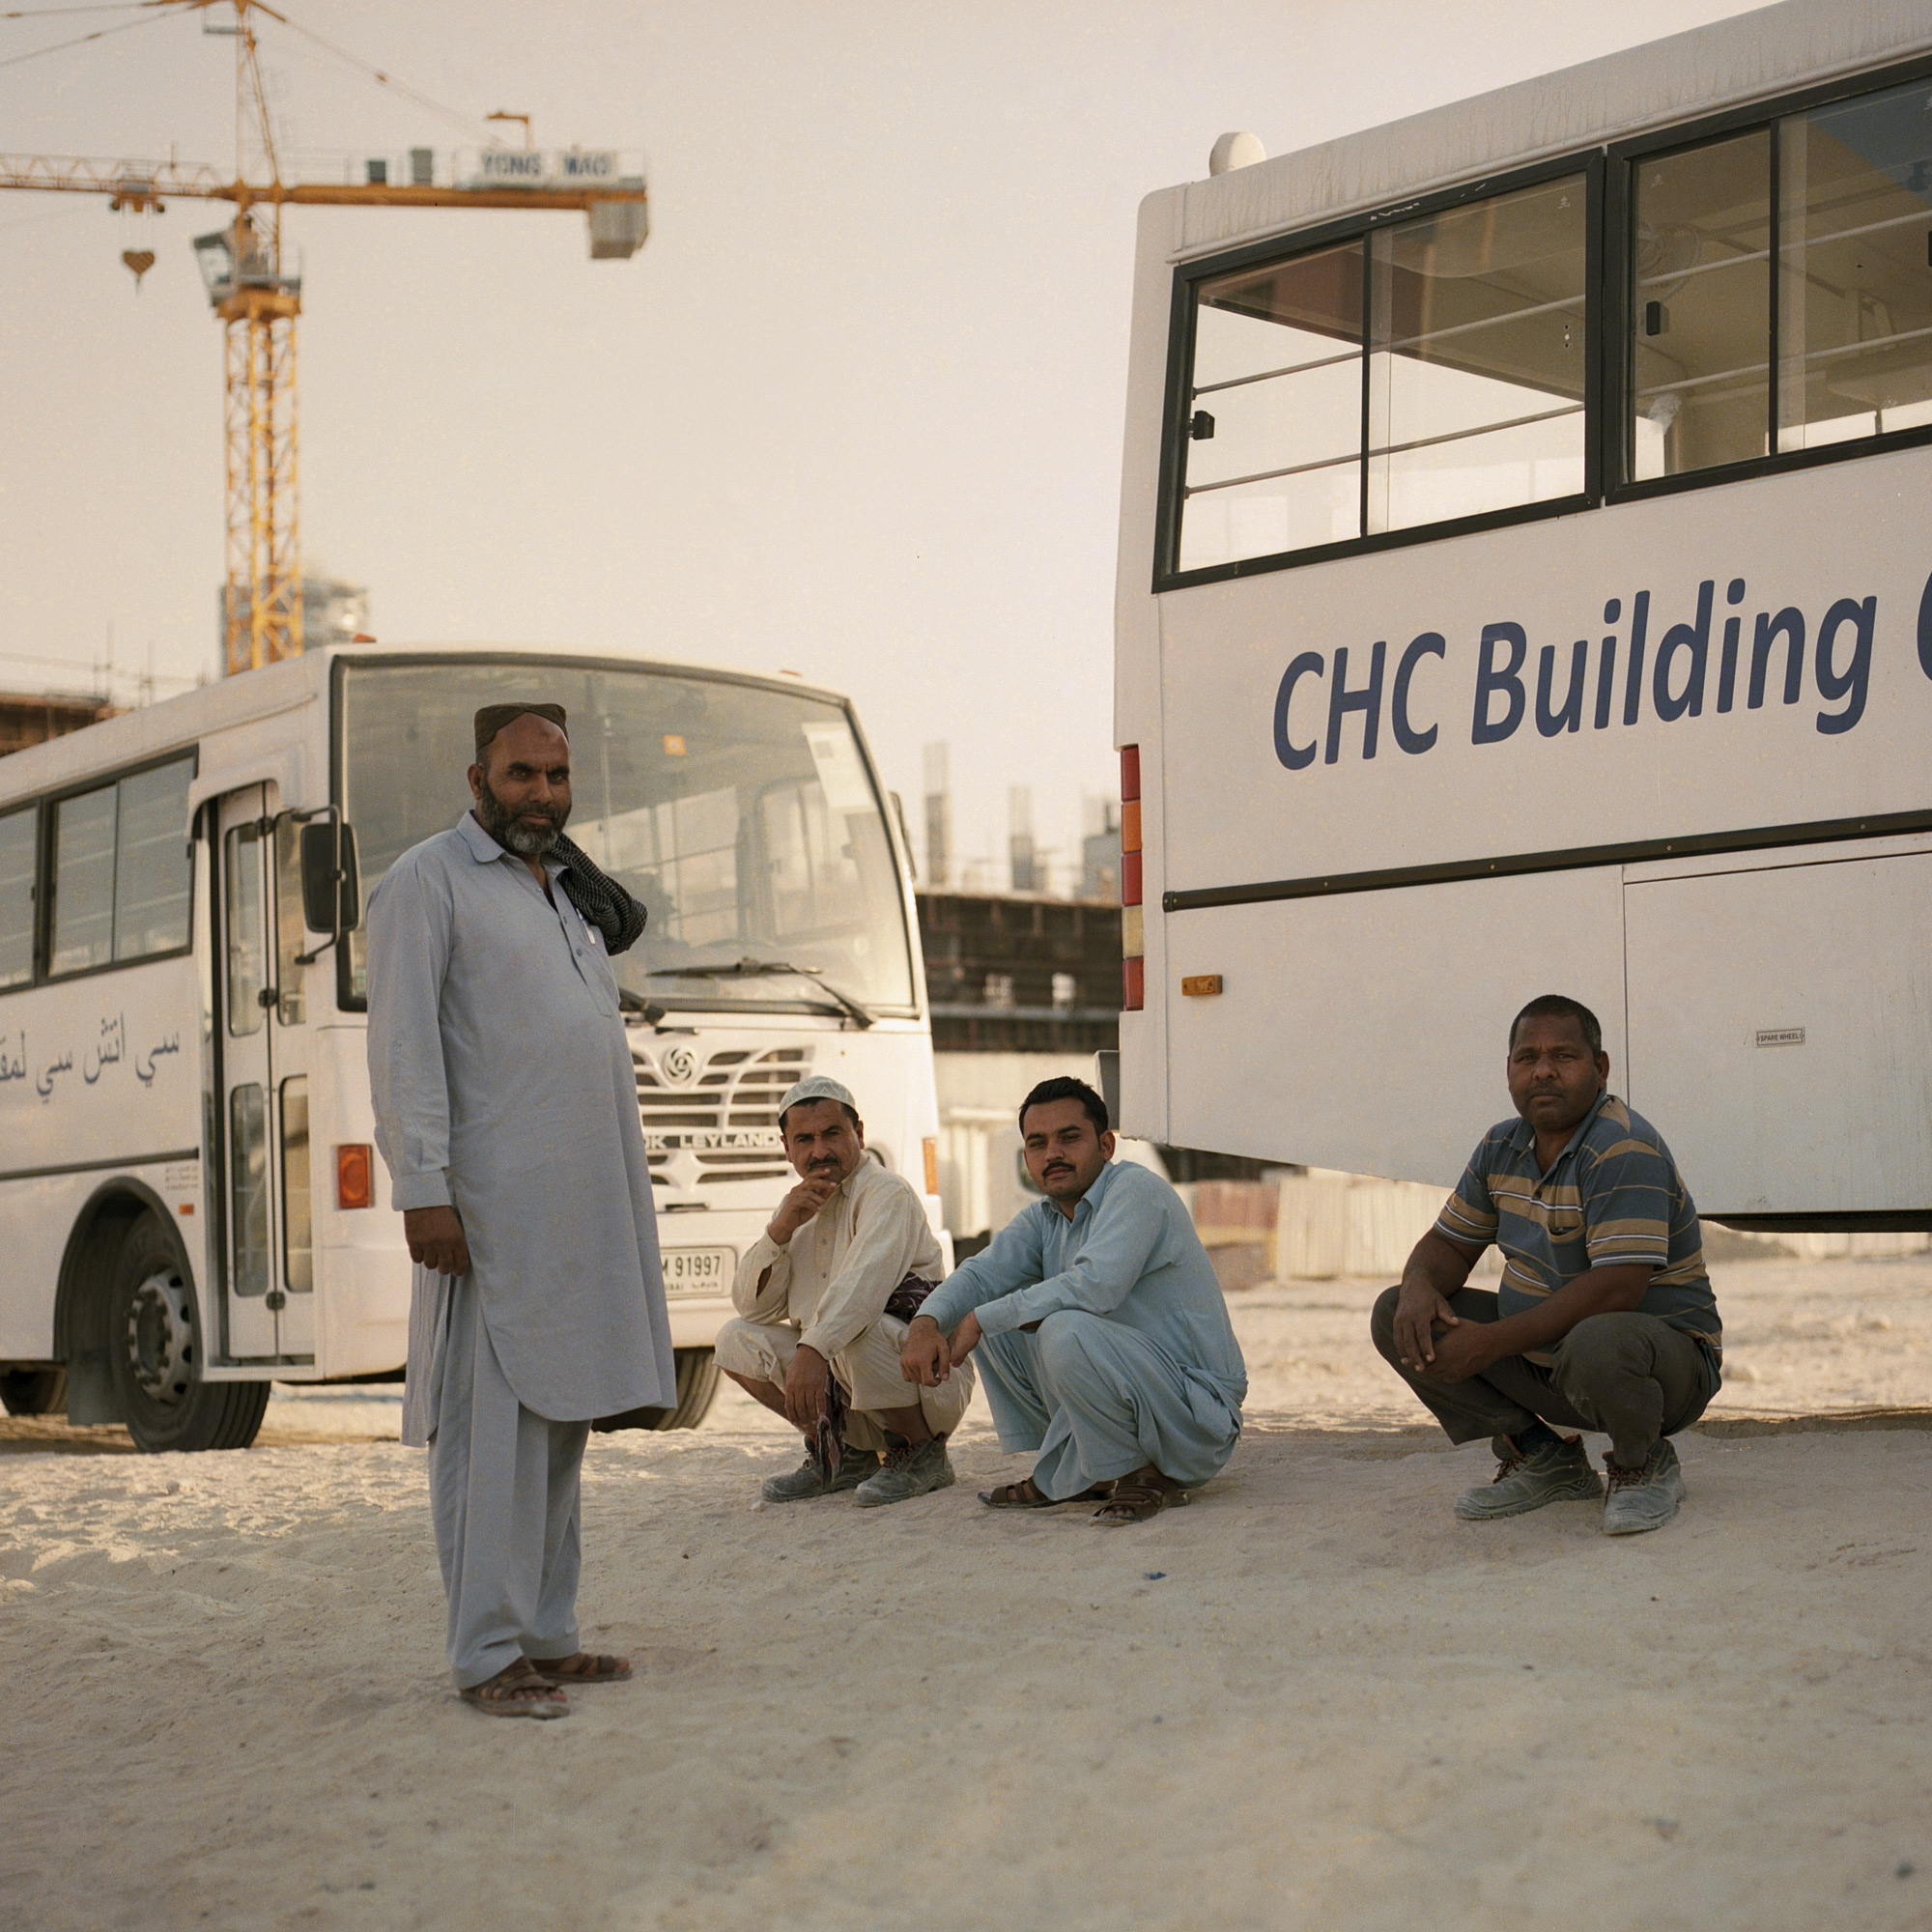 Indian construction workers end of day waiting to go home. Dubai Labourers.